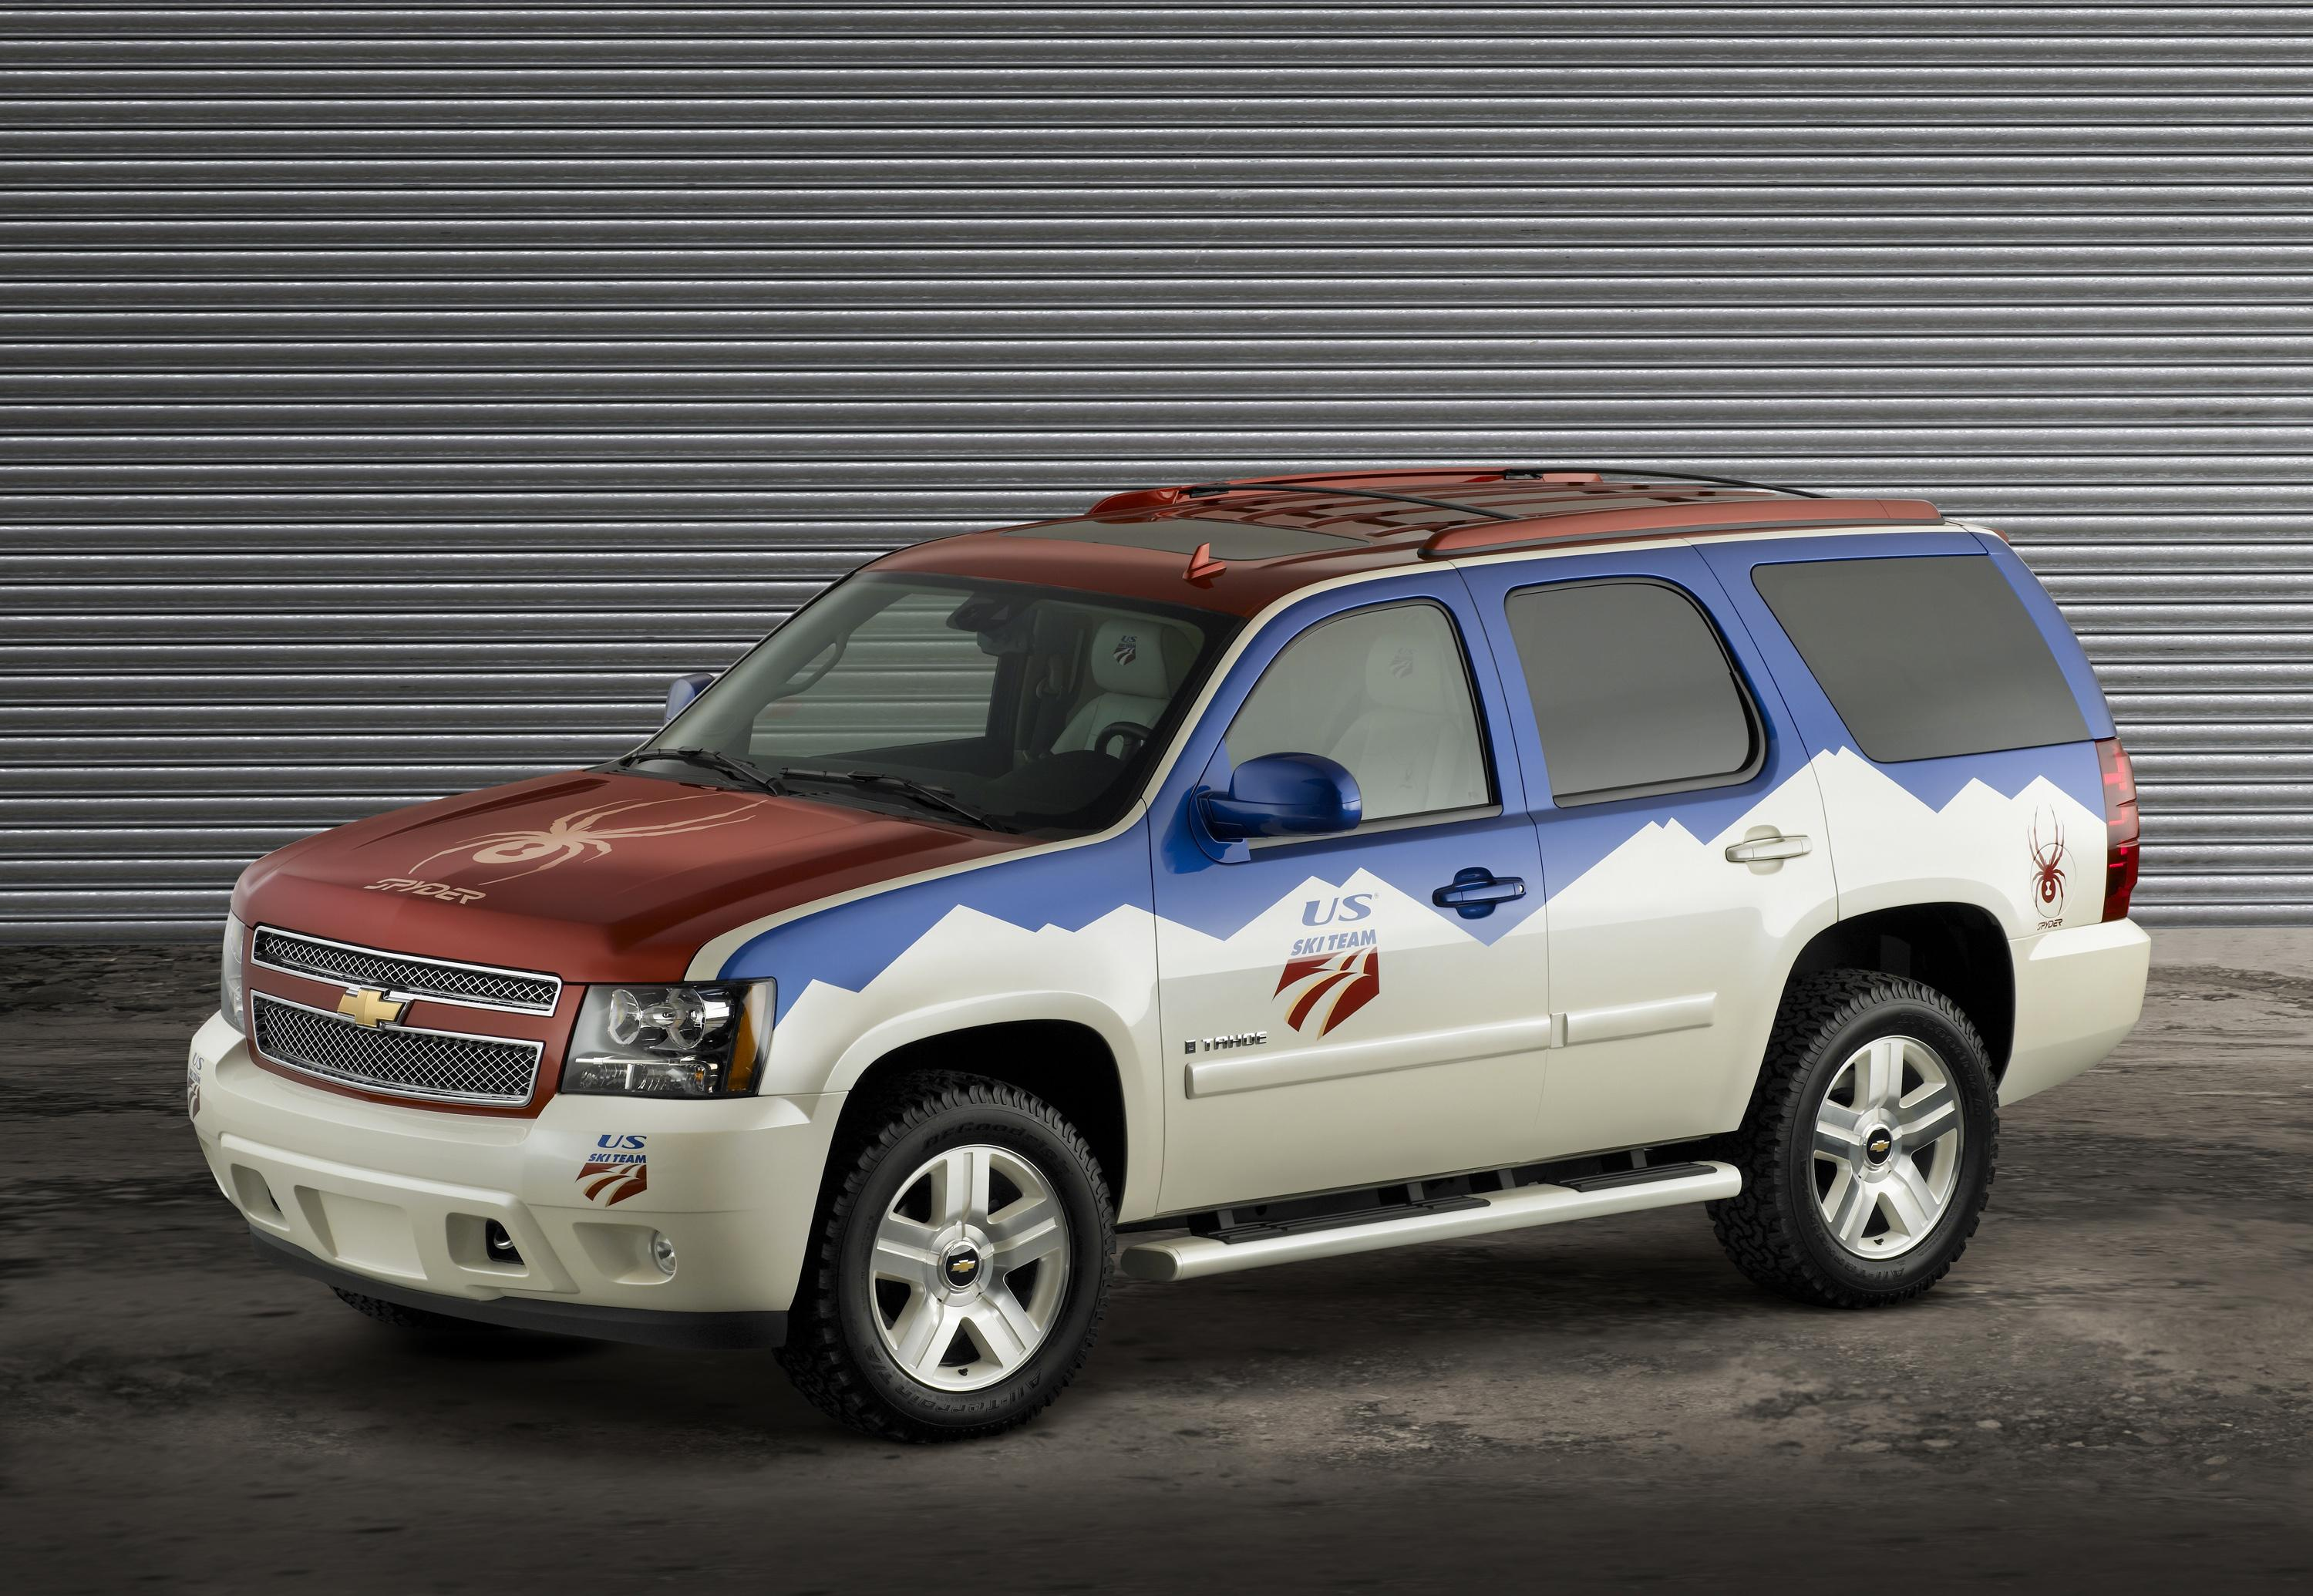 tahoe priority htm laporte inventory ia chevrolet waterloo rd automotive lt services in sale for